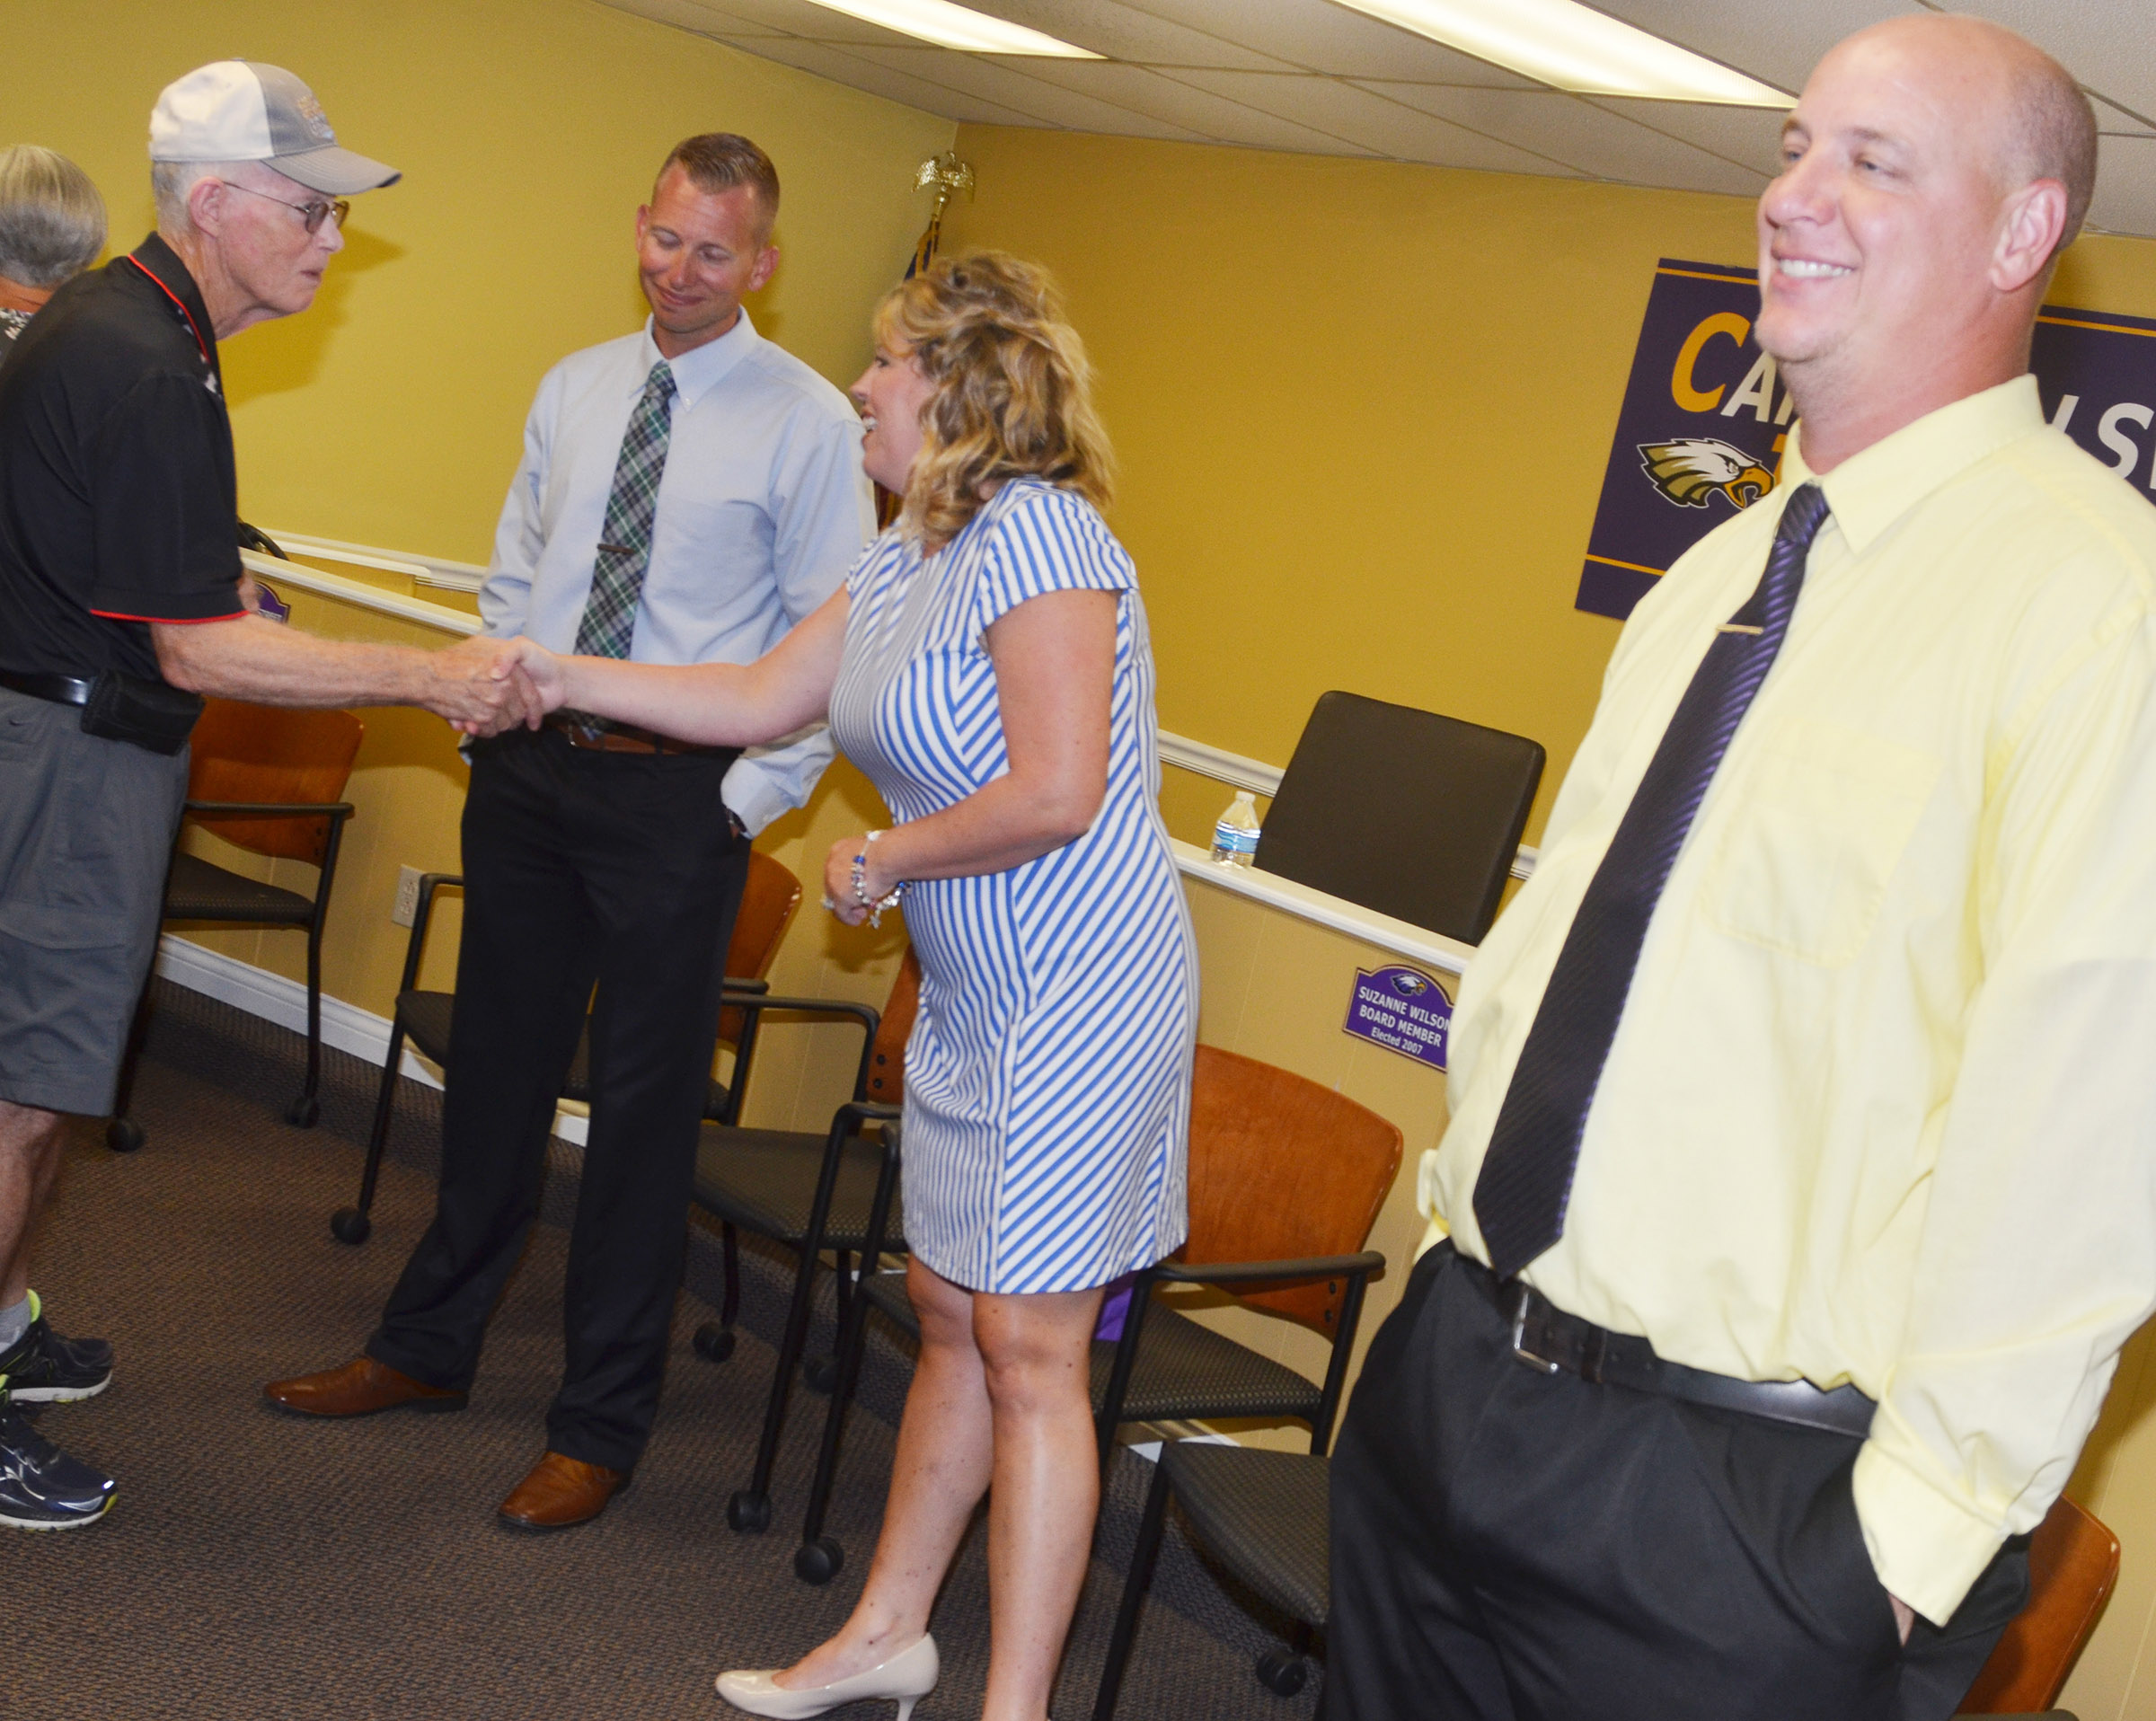 From left, CMS Principal Zach Lewis, CES Principal Elisha Rhodes and CHS Principal David Petett receive congratulations from Phil Allan Bertram.